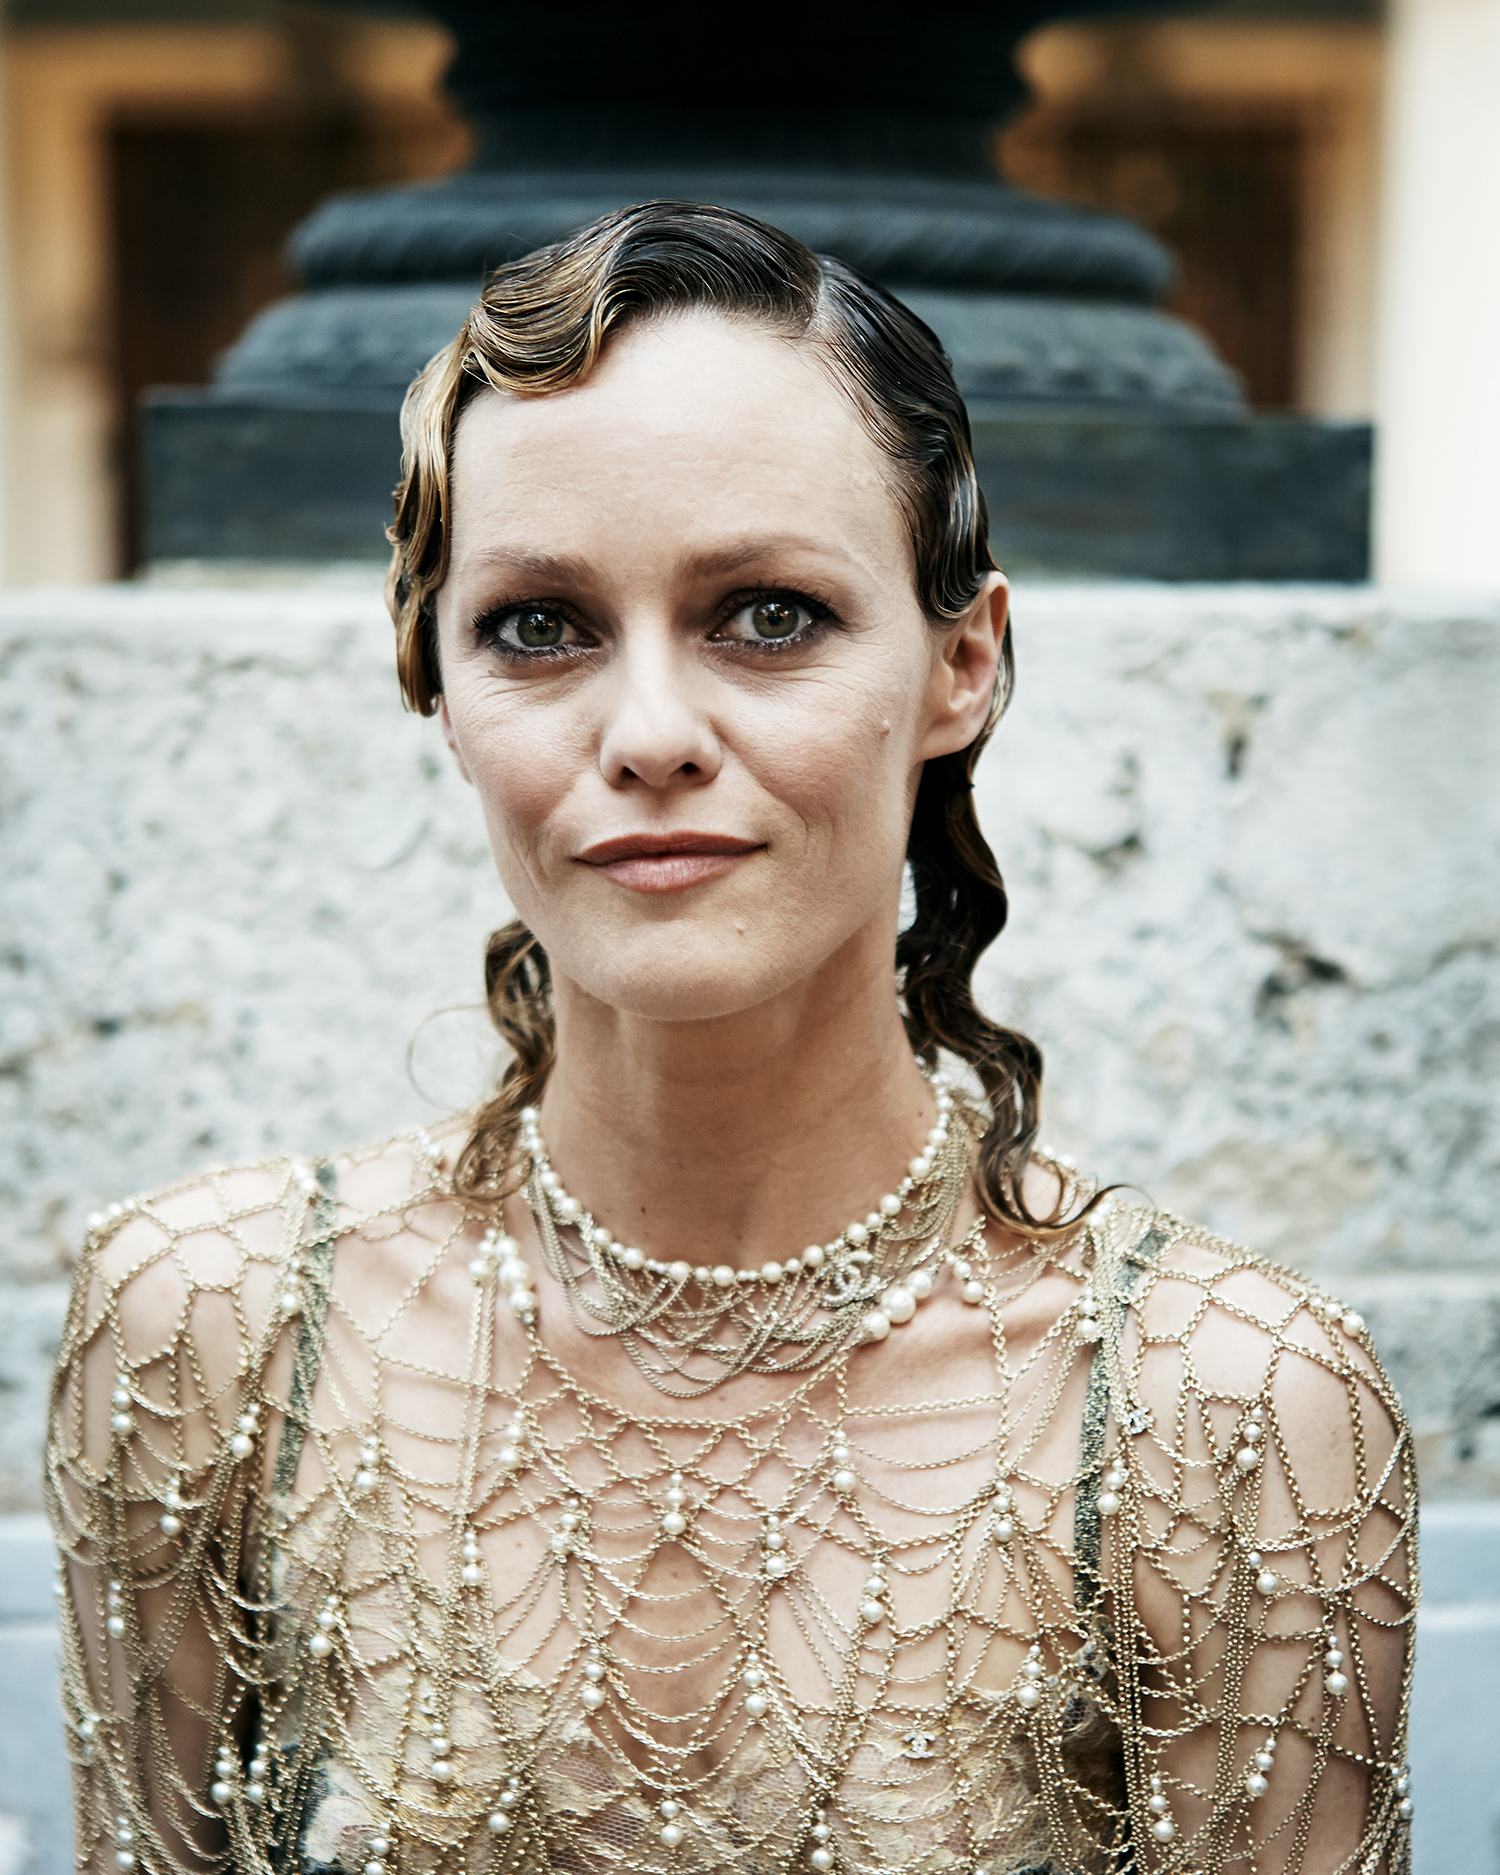 Vanessa-Paradis-by-Weston-Wells.jpg